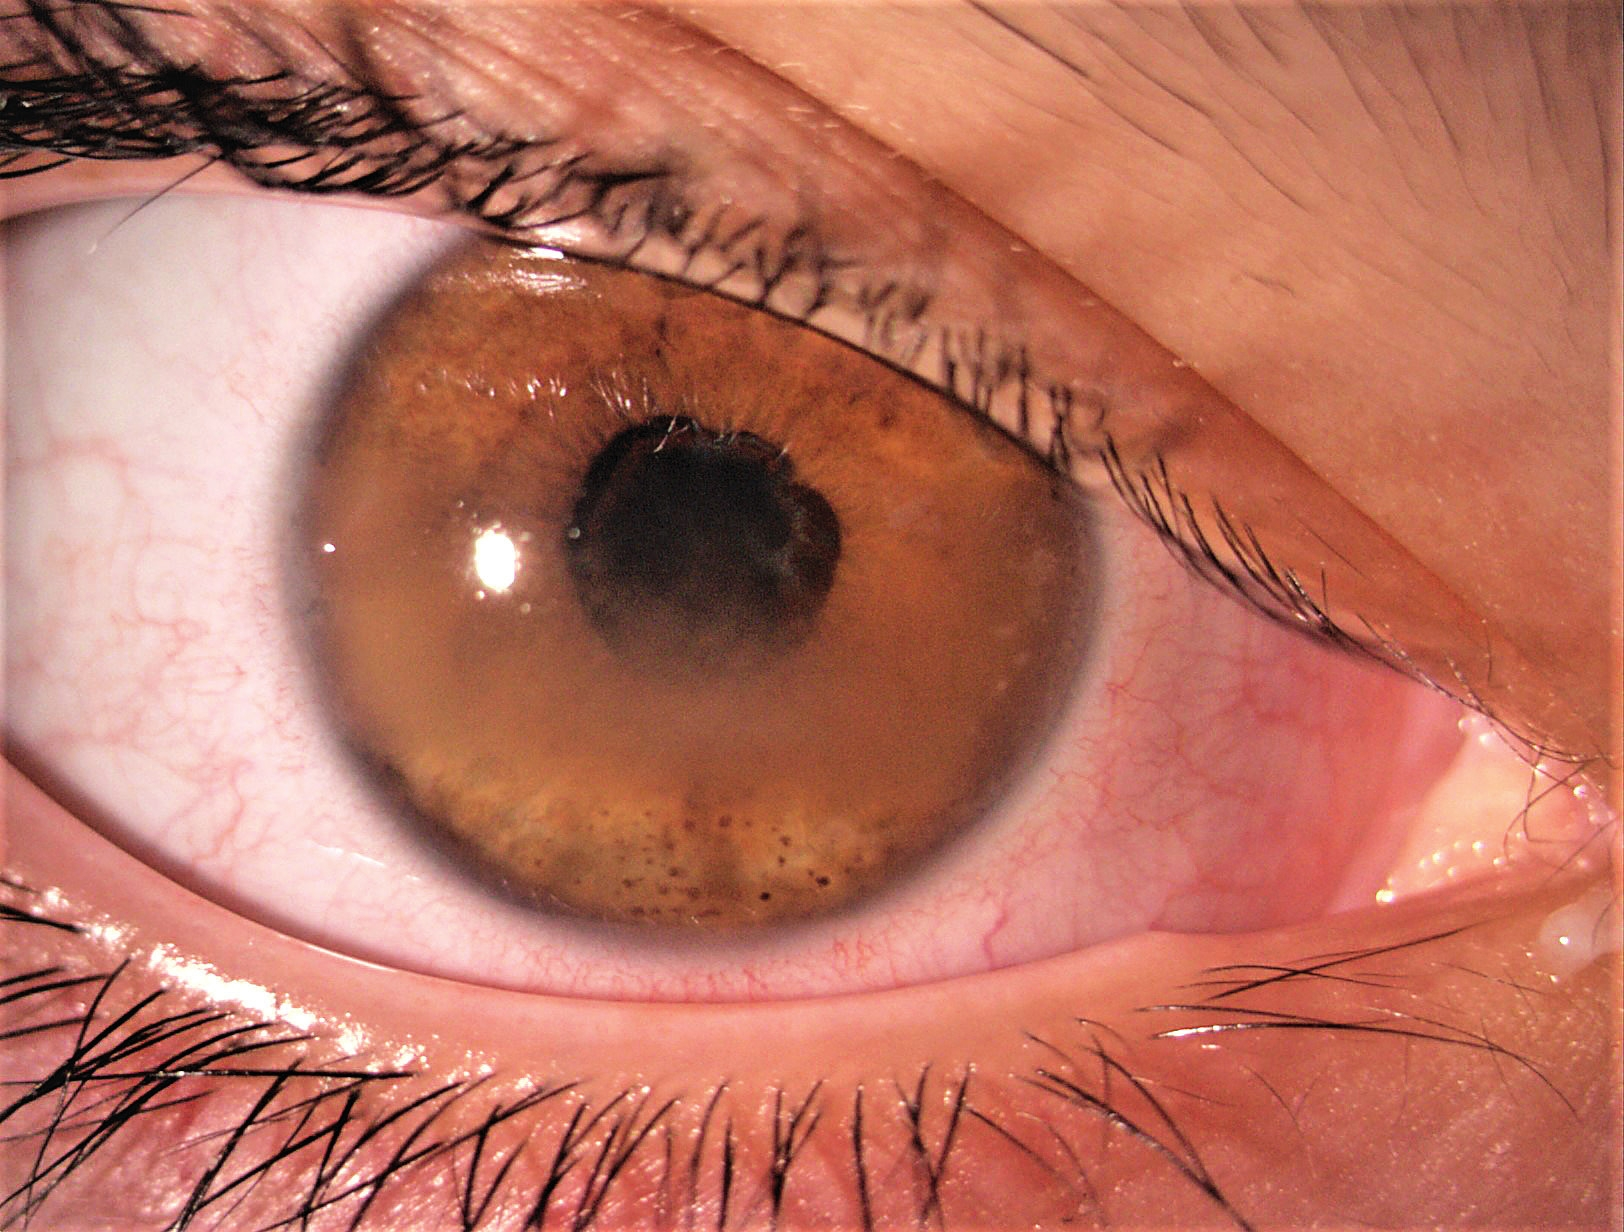 Uveitida se zonulární keratopatií, zadními synechiemi a kataraktou.<br>Fig. 1. Complicated uveitis with band kerathopathy, posterior synechiae and cataract.